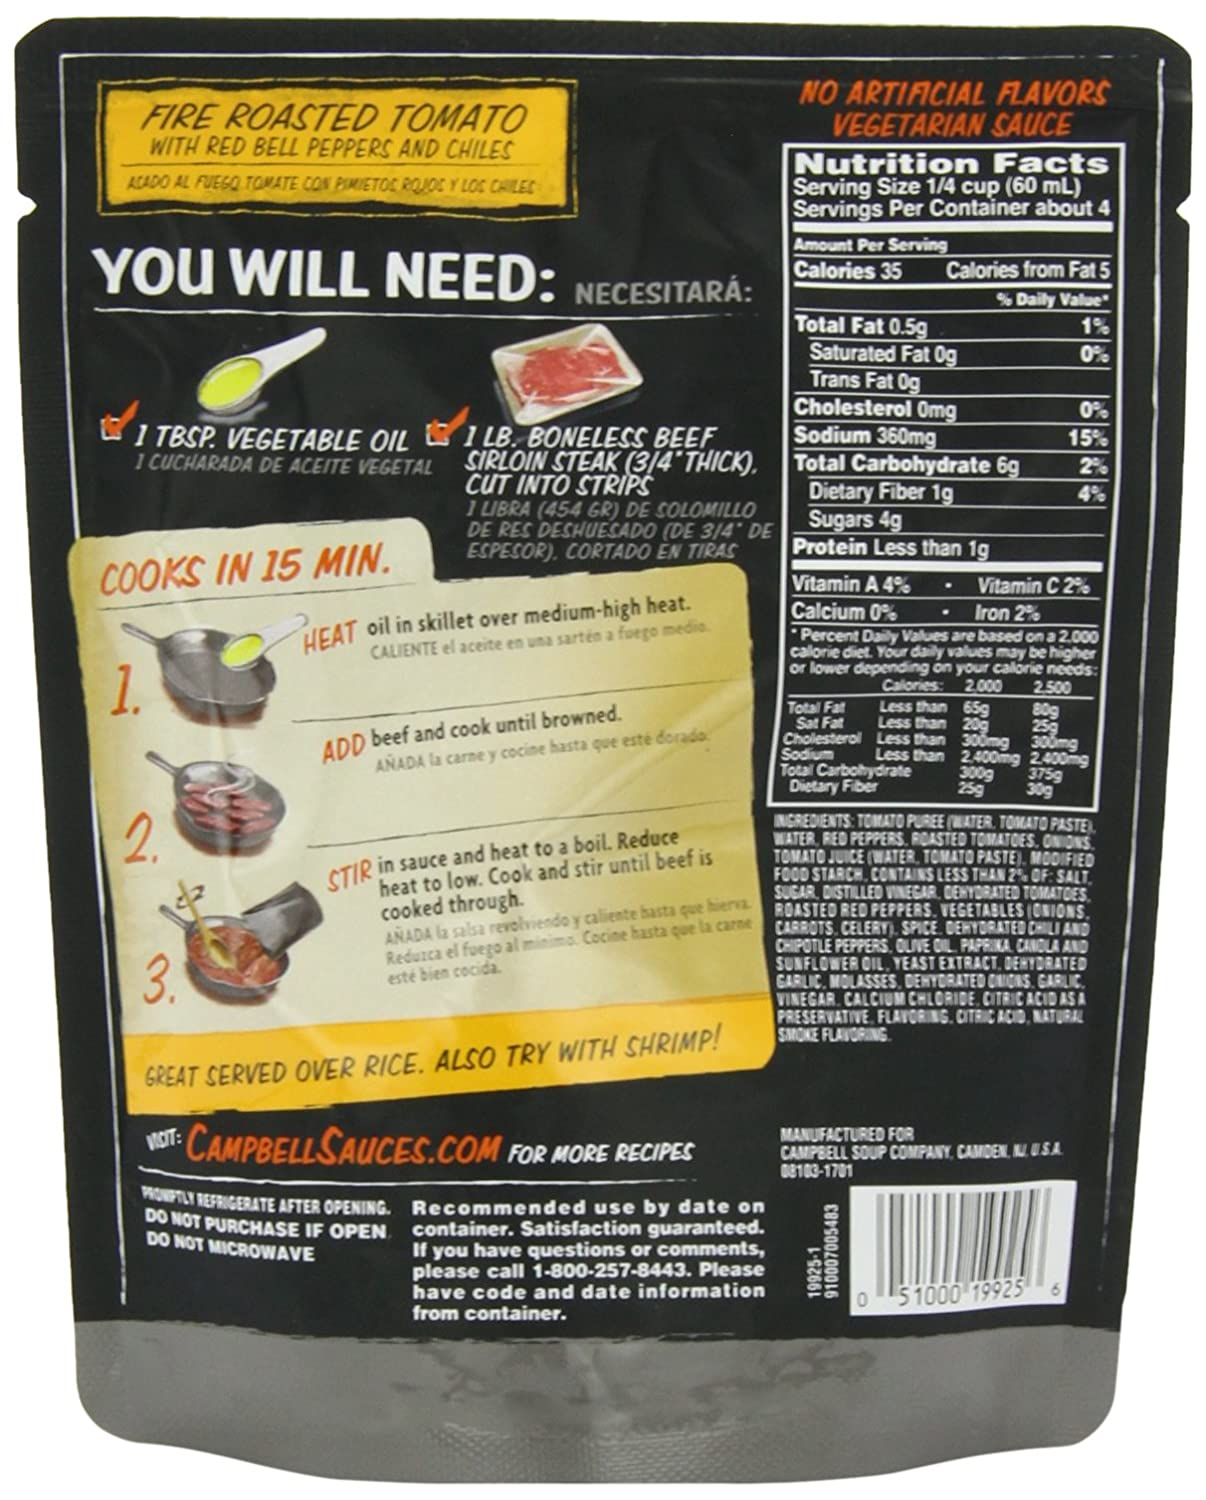 Amazon.com : Campbells Skillet Sauces, Fire Roasted Tomato Red Pepper and Chiles, 9-Ounce Pouch : Marinades And Seasoning Mixes : Grocery & Gourmet Food